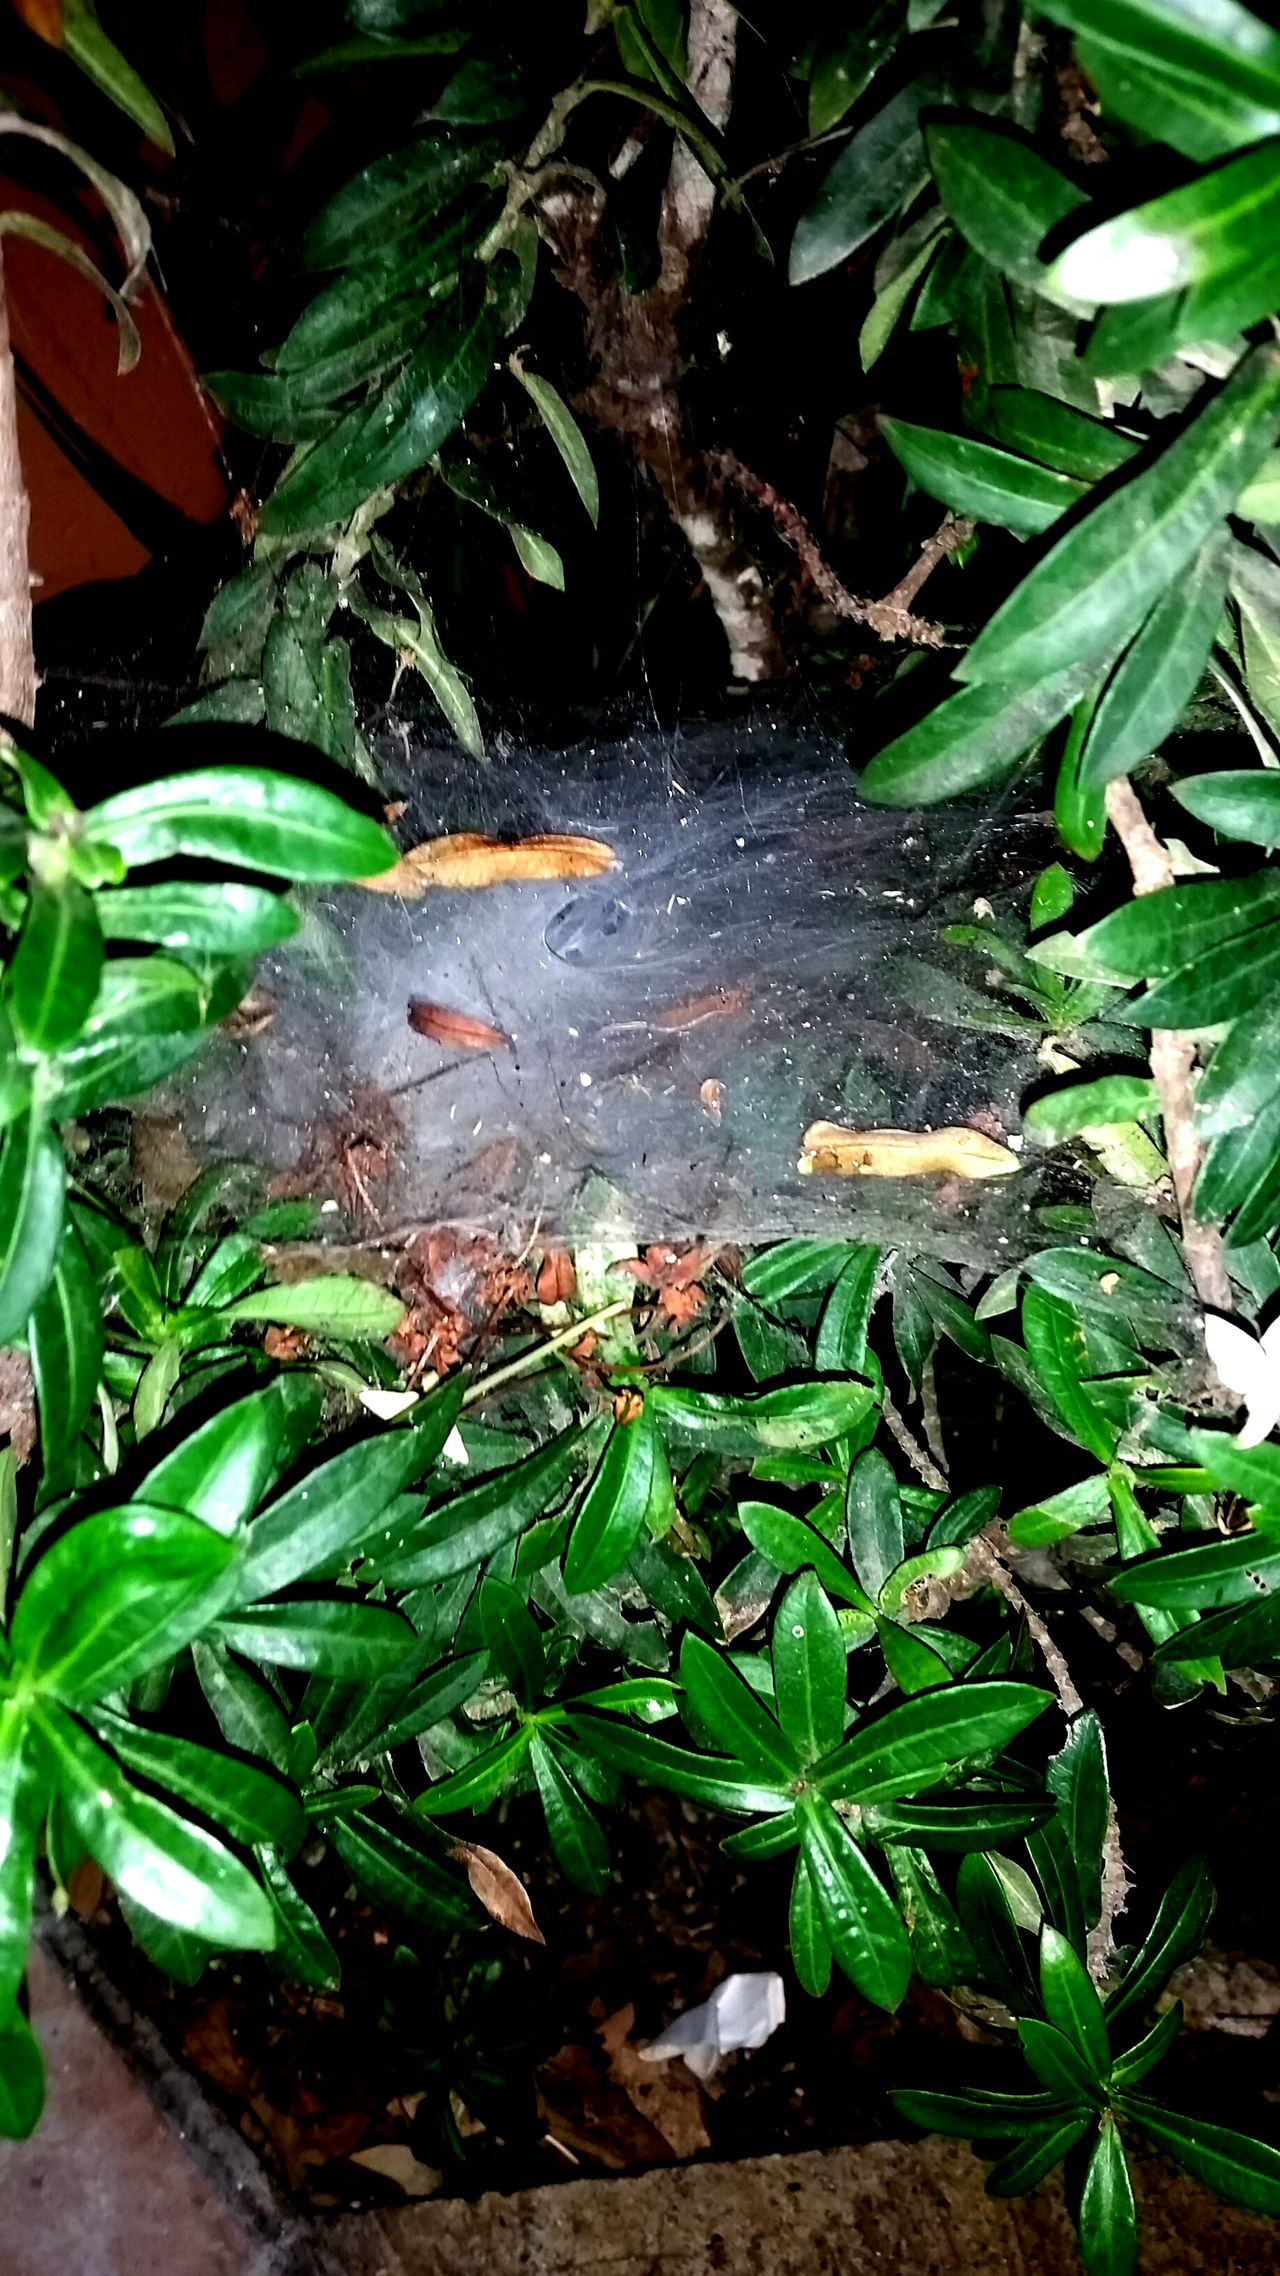 Leaf Water Plant Nature Growth Green Color Beauty In Nature Drop Day Close-up Outdoors No People Sunlight Freshness Animal Themes Floating On Water Fragility Spider Web Spiderweb Spider Webs Spiderworld Spiderwebs Spiders Web